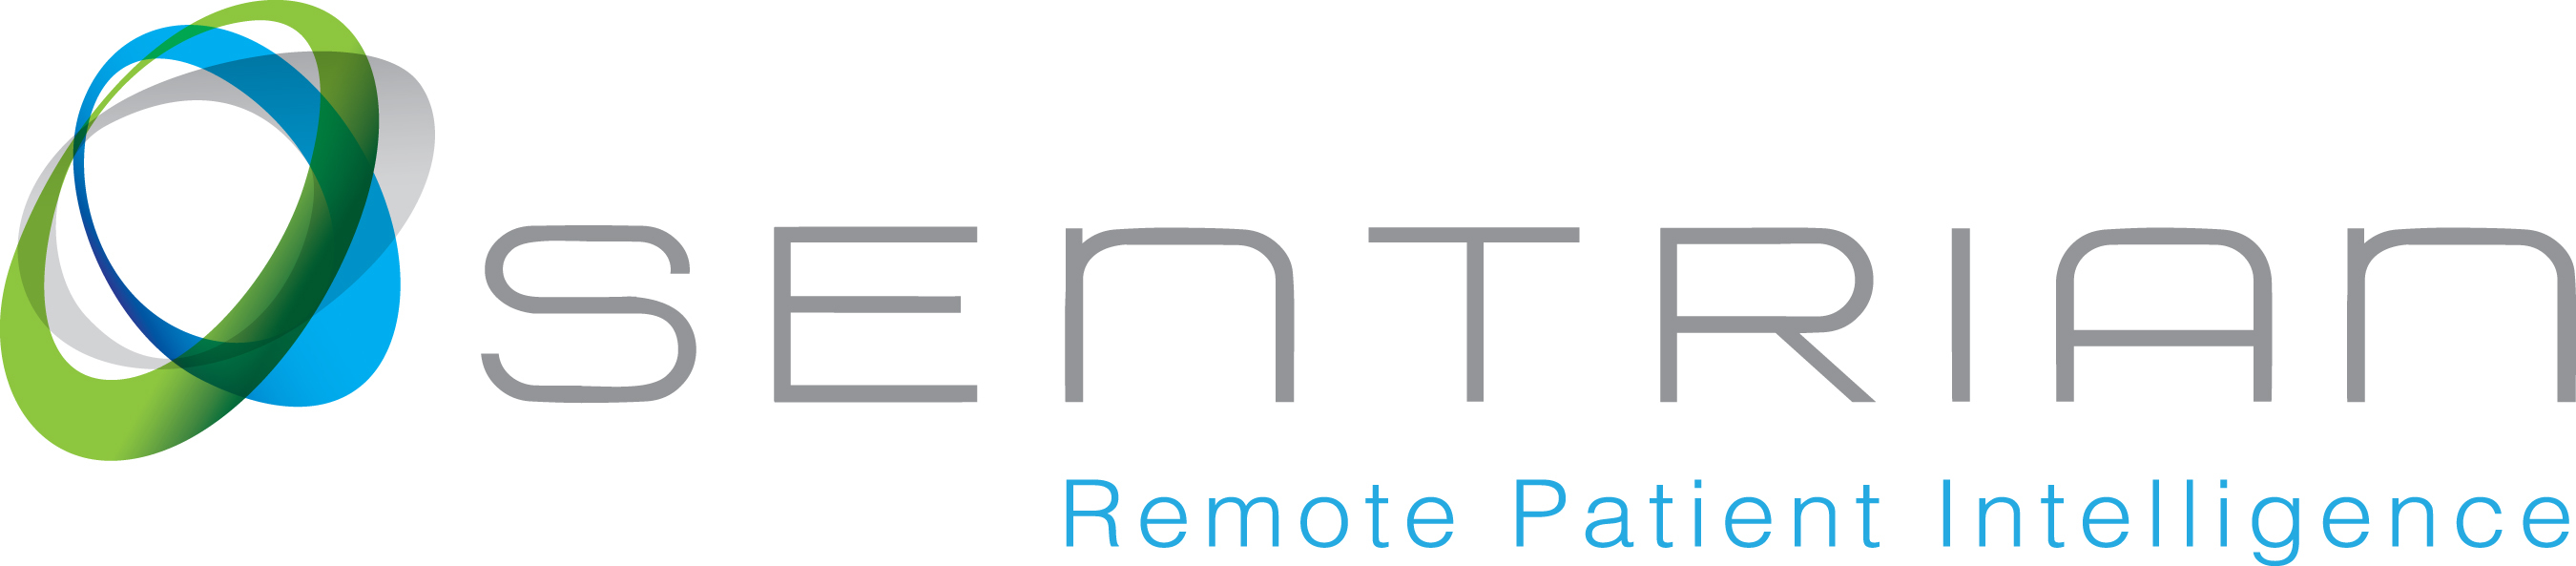 Sentrian, the first remote patient intelligence company, aspires to eliminate all preventable hospitalization ...